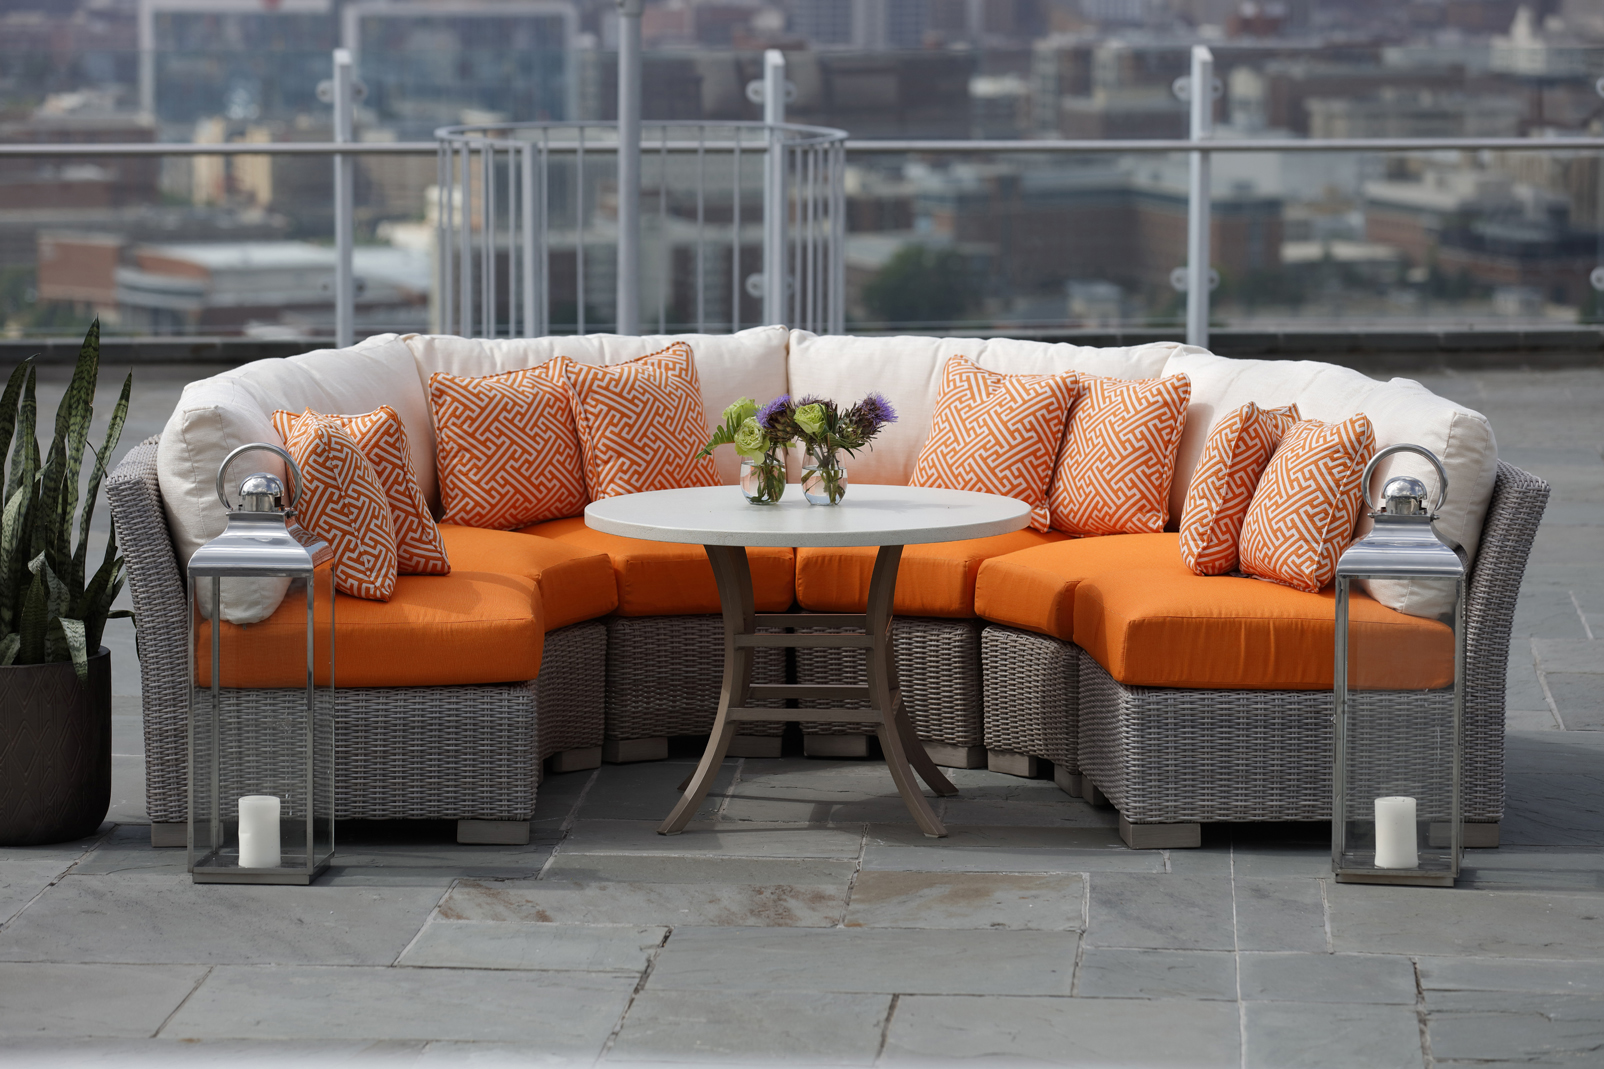 Wonderful Summer Classics Offers Outdoor Sectional Seating Designed To Fit Any Space.  No Matter How Big (or Small) Your Living Area, You Can Get A Look You Love.